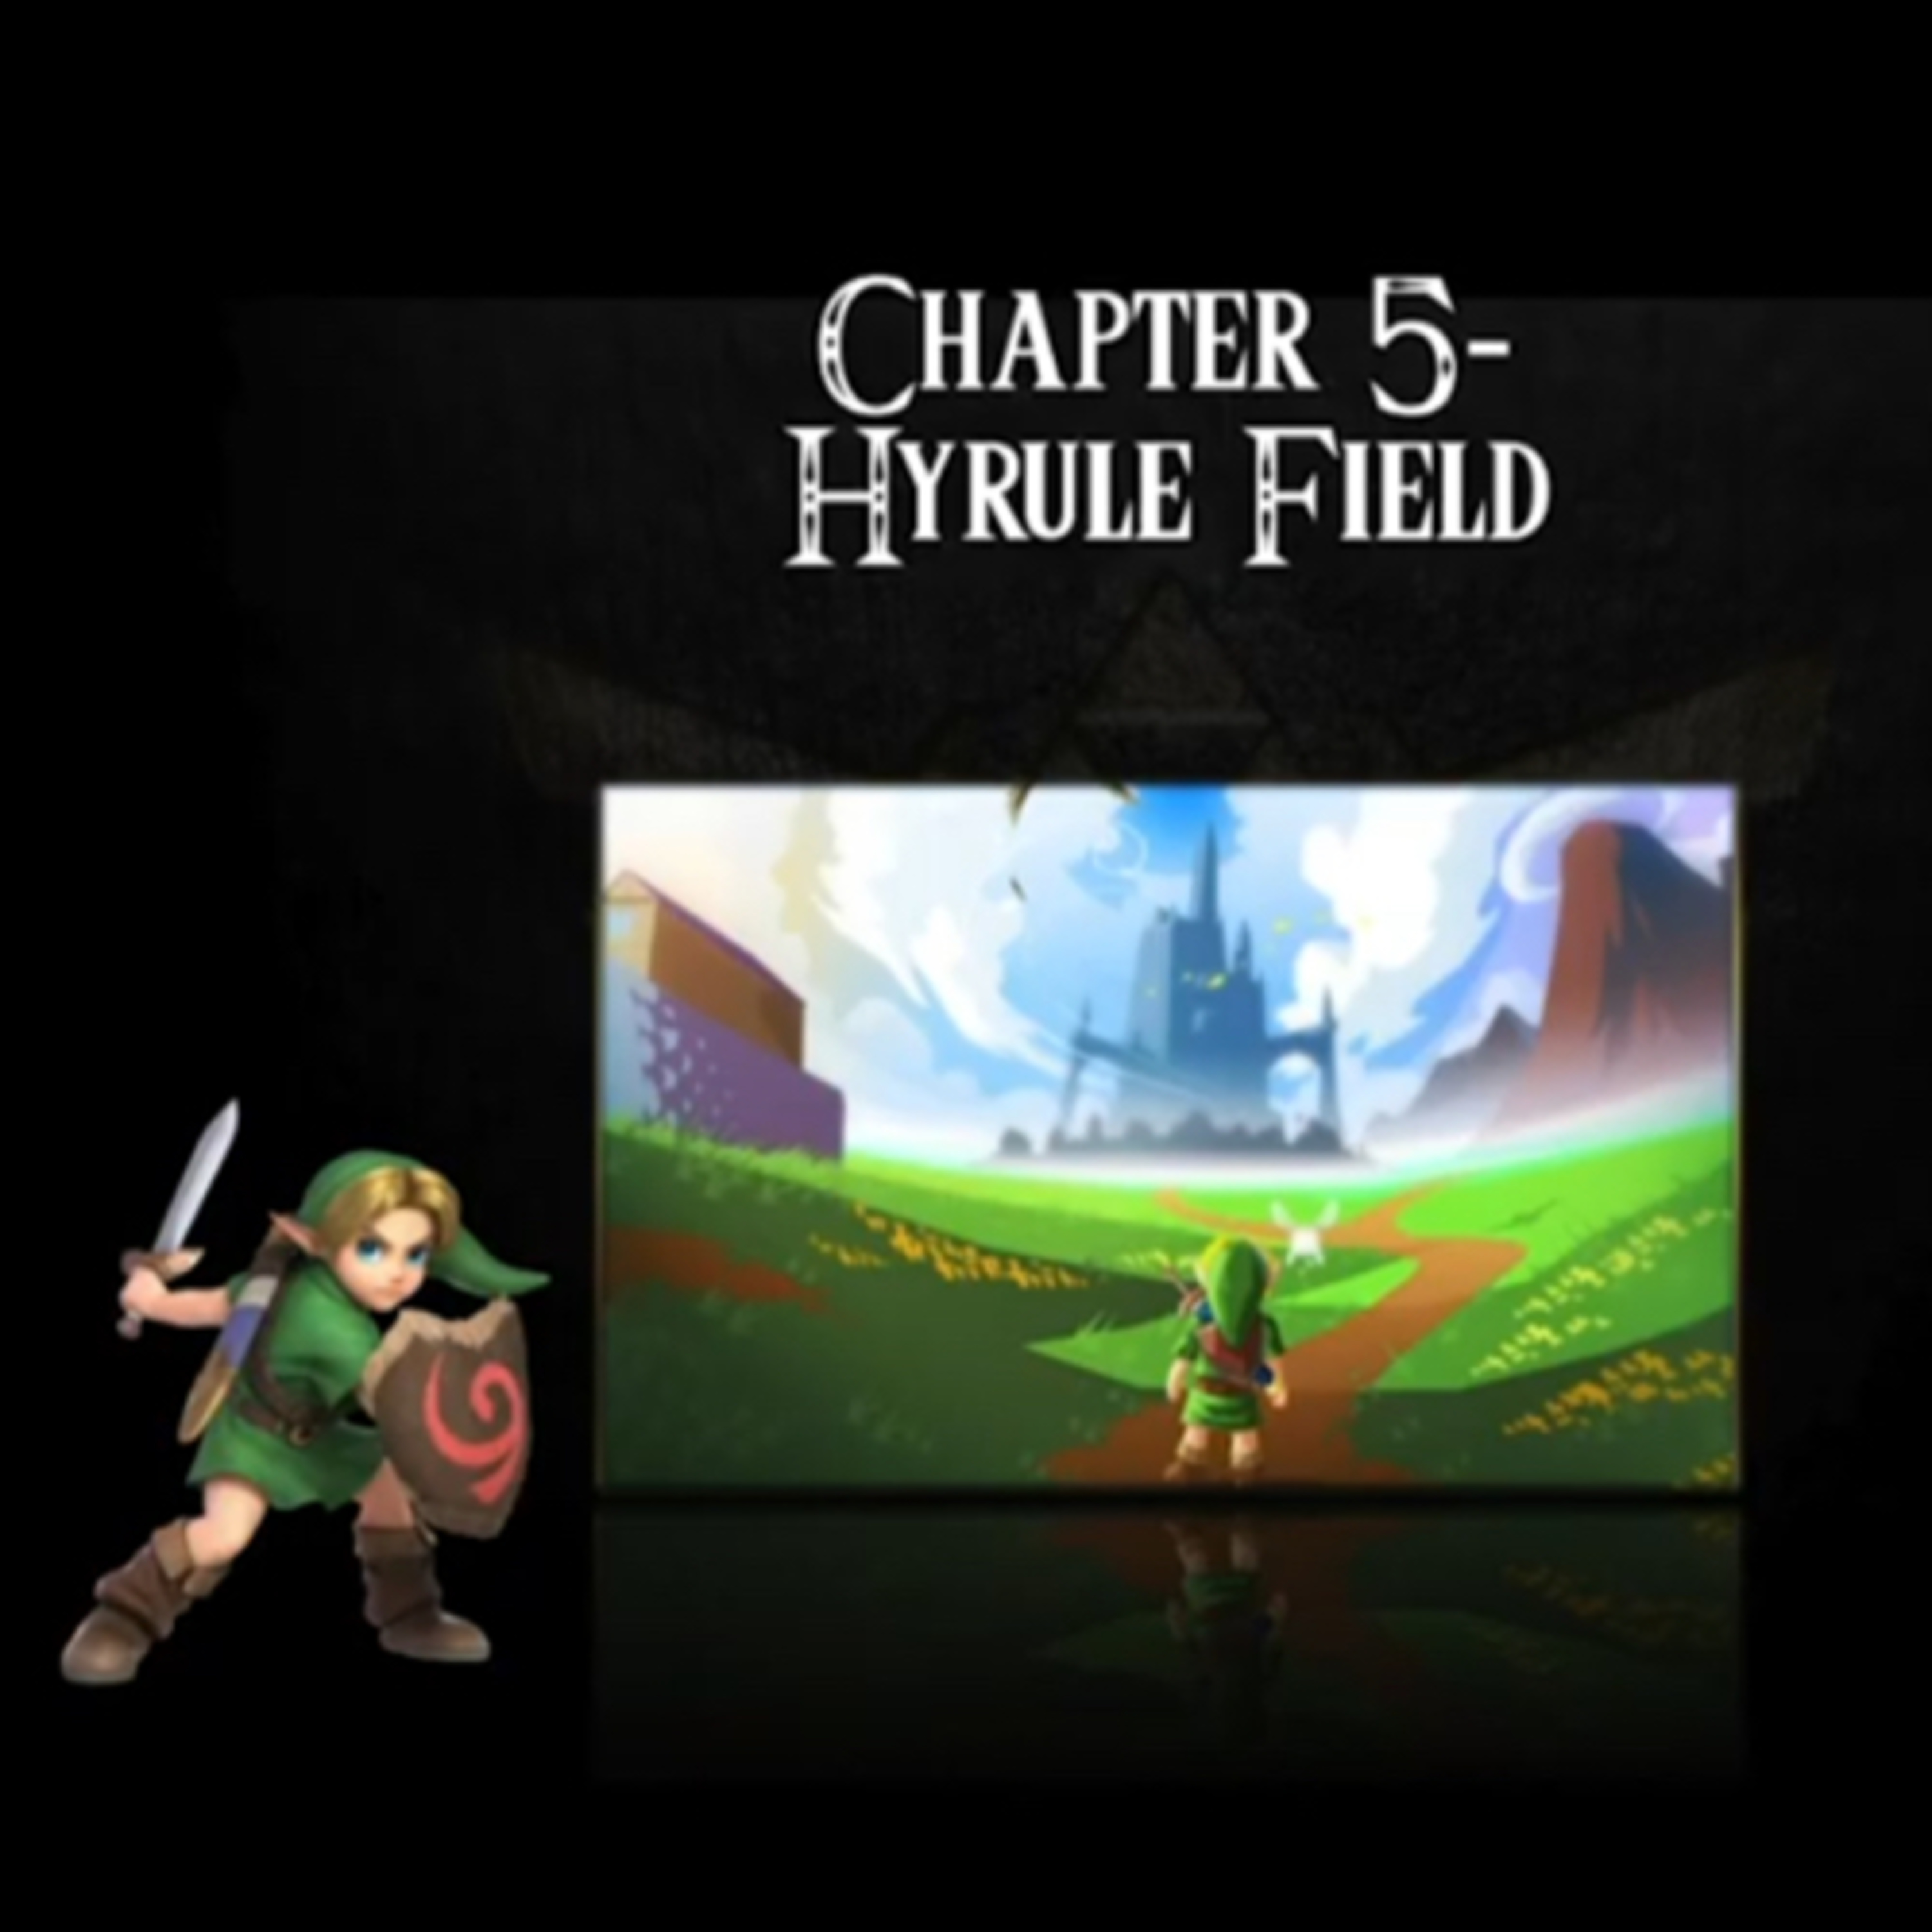 Ocarina Of Time Audiobook Chapter 5 Hyrule Field The Legend Of Zelda Ocarina Of Time An Audiobook Production Podcast Podtail